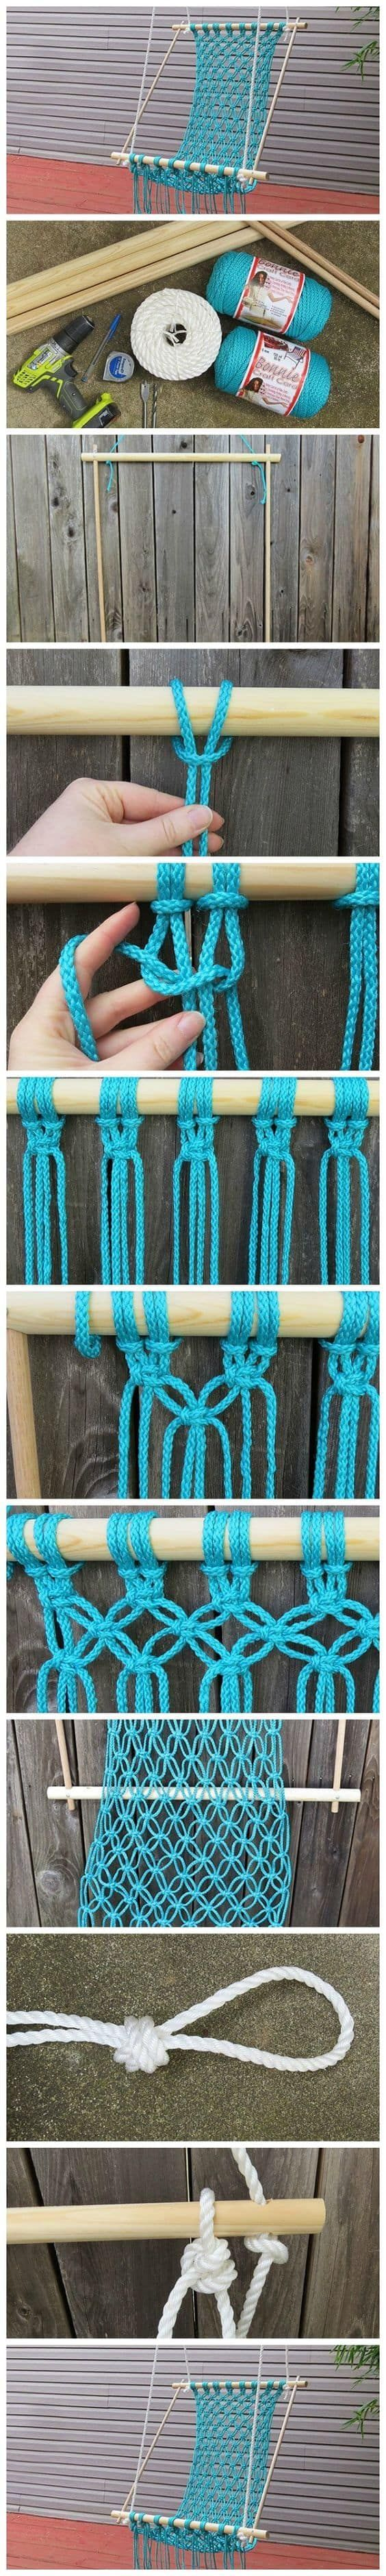 Macrame Hanging Chair DIY Is Super Easy To Make – Projects to try